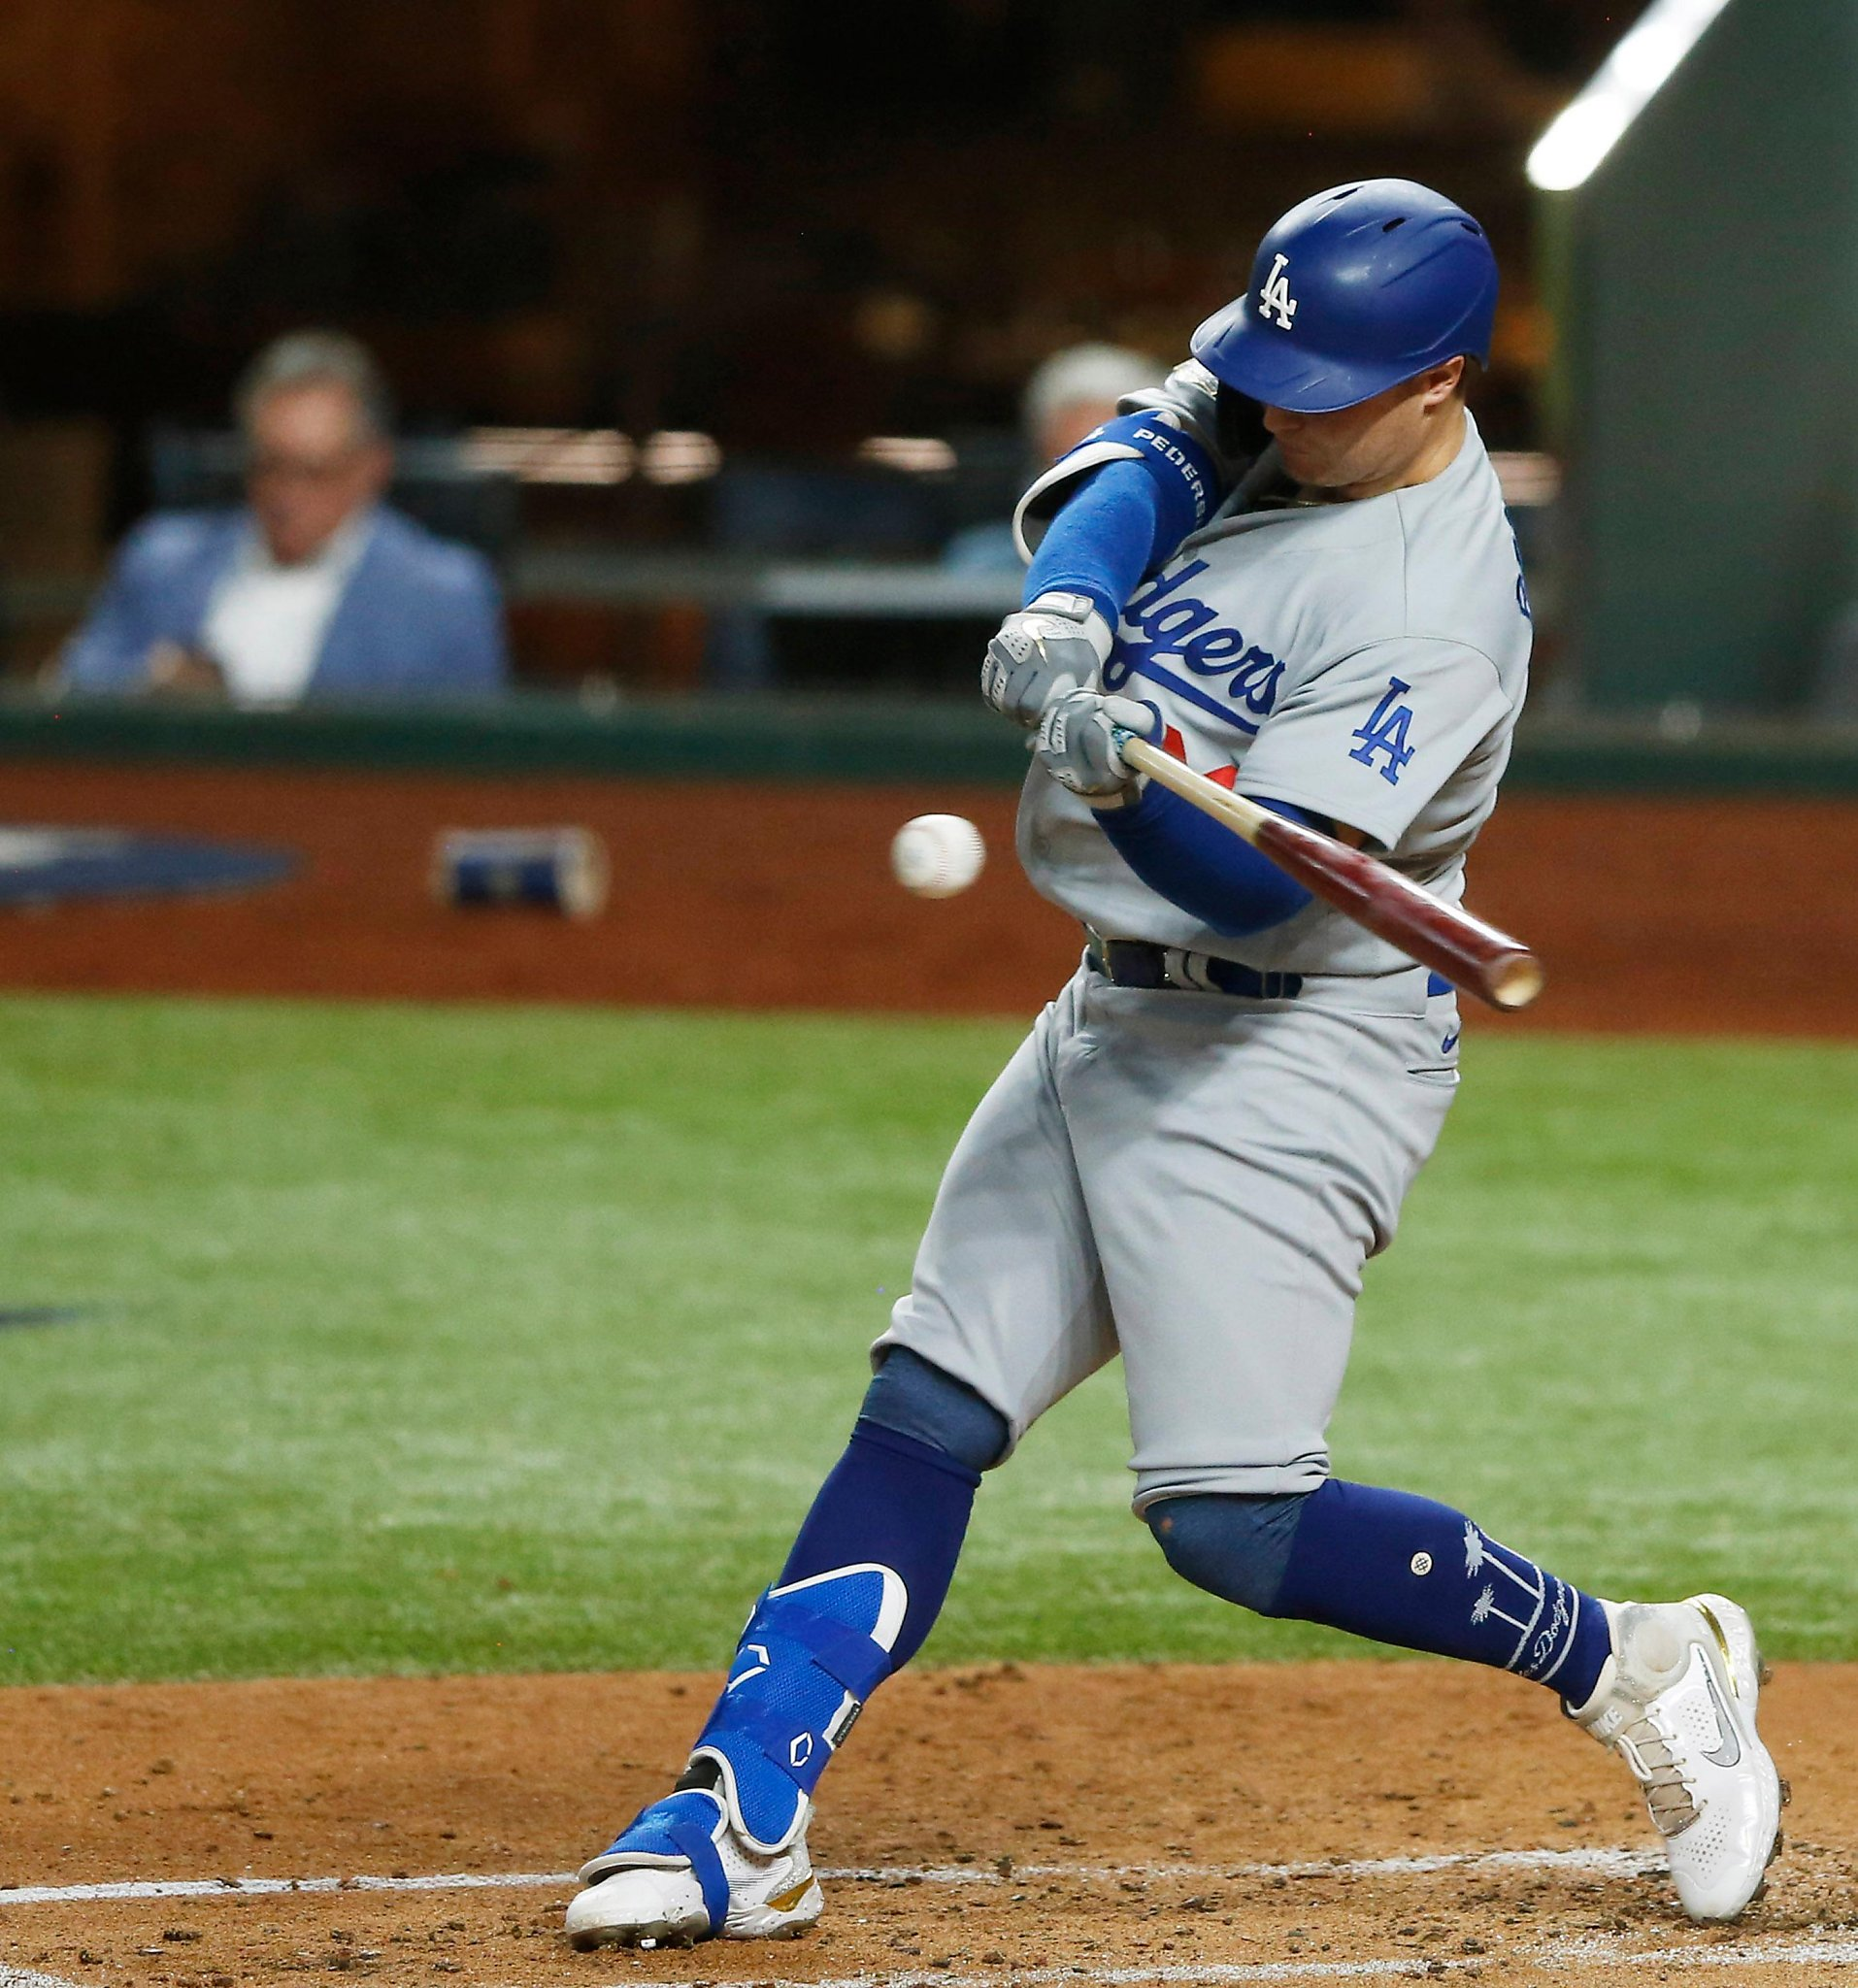 Dodgers' Joc Pederson heading to free agency after World Series; Giants a fit?